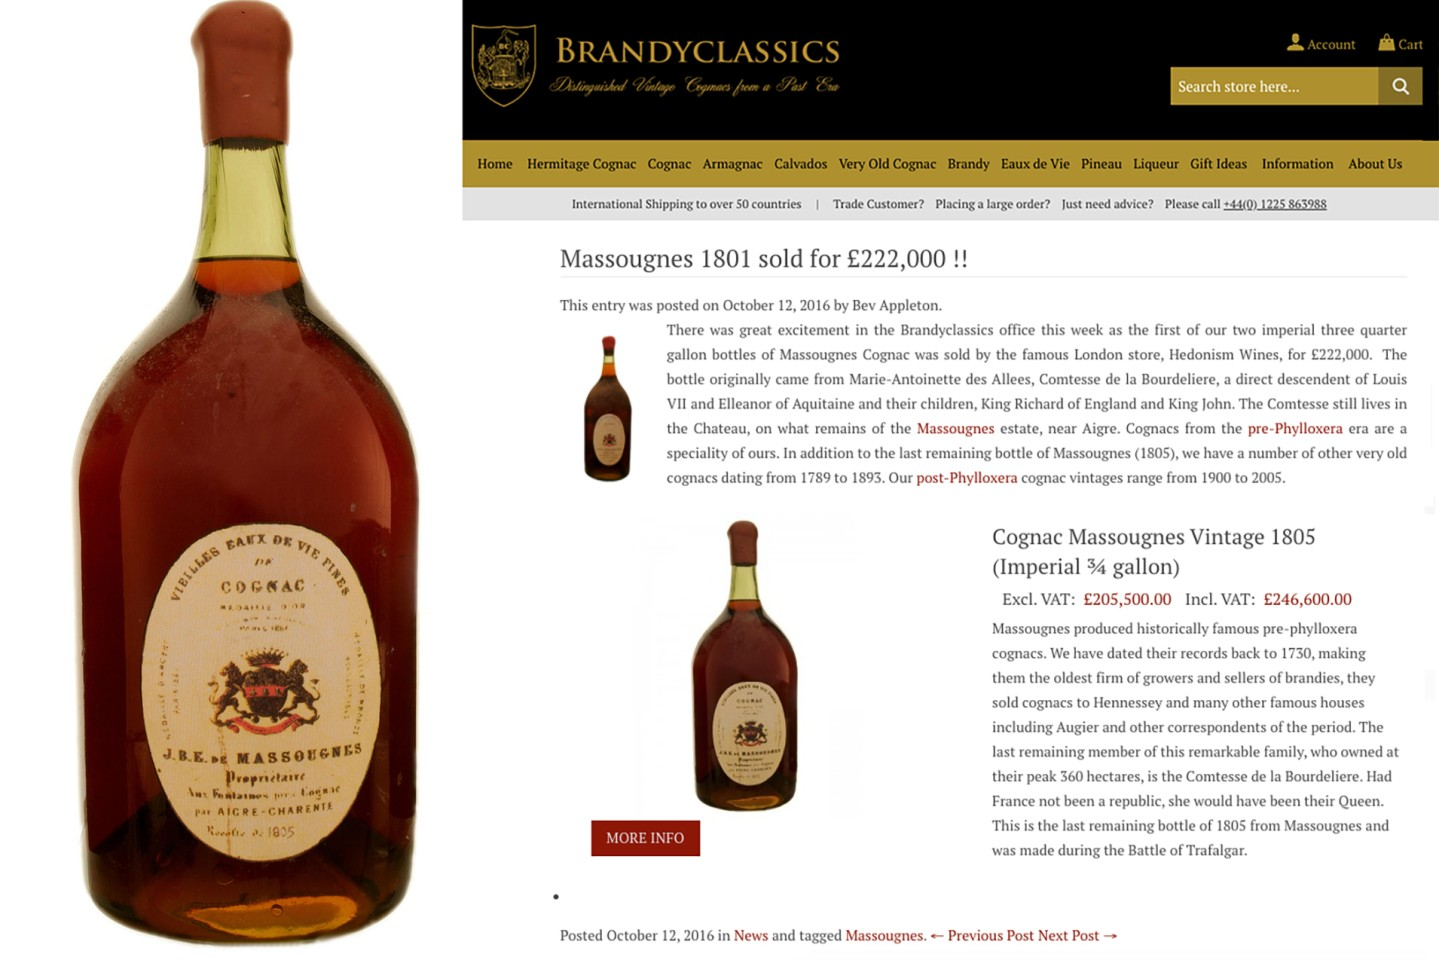 London's Hedonism Wines sold a bottle of 1801 Massougnes Cognac for GBP£222,000 ($270,761) in October 2016